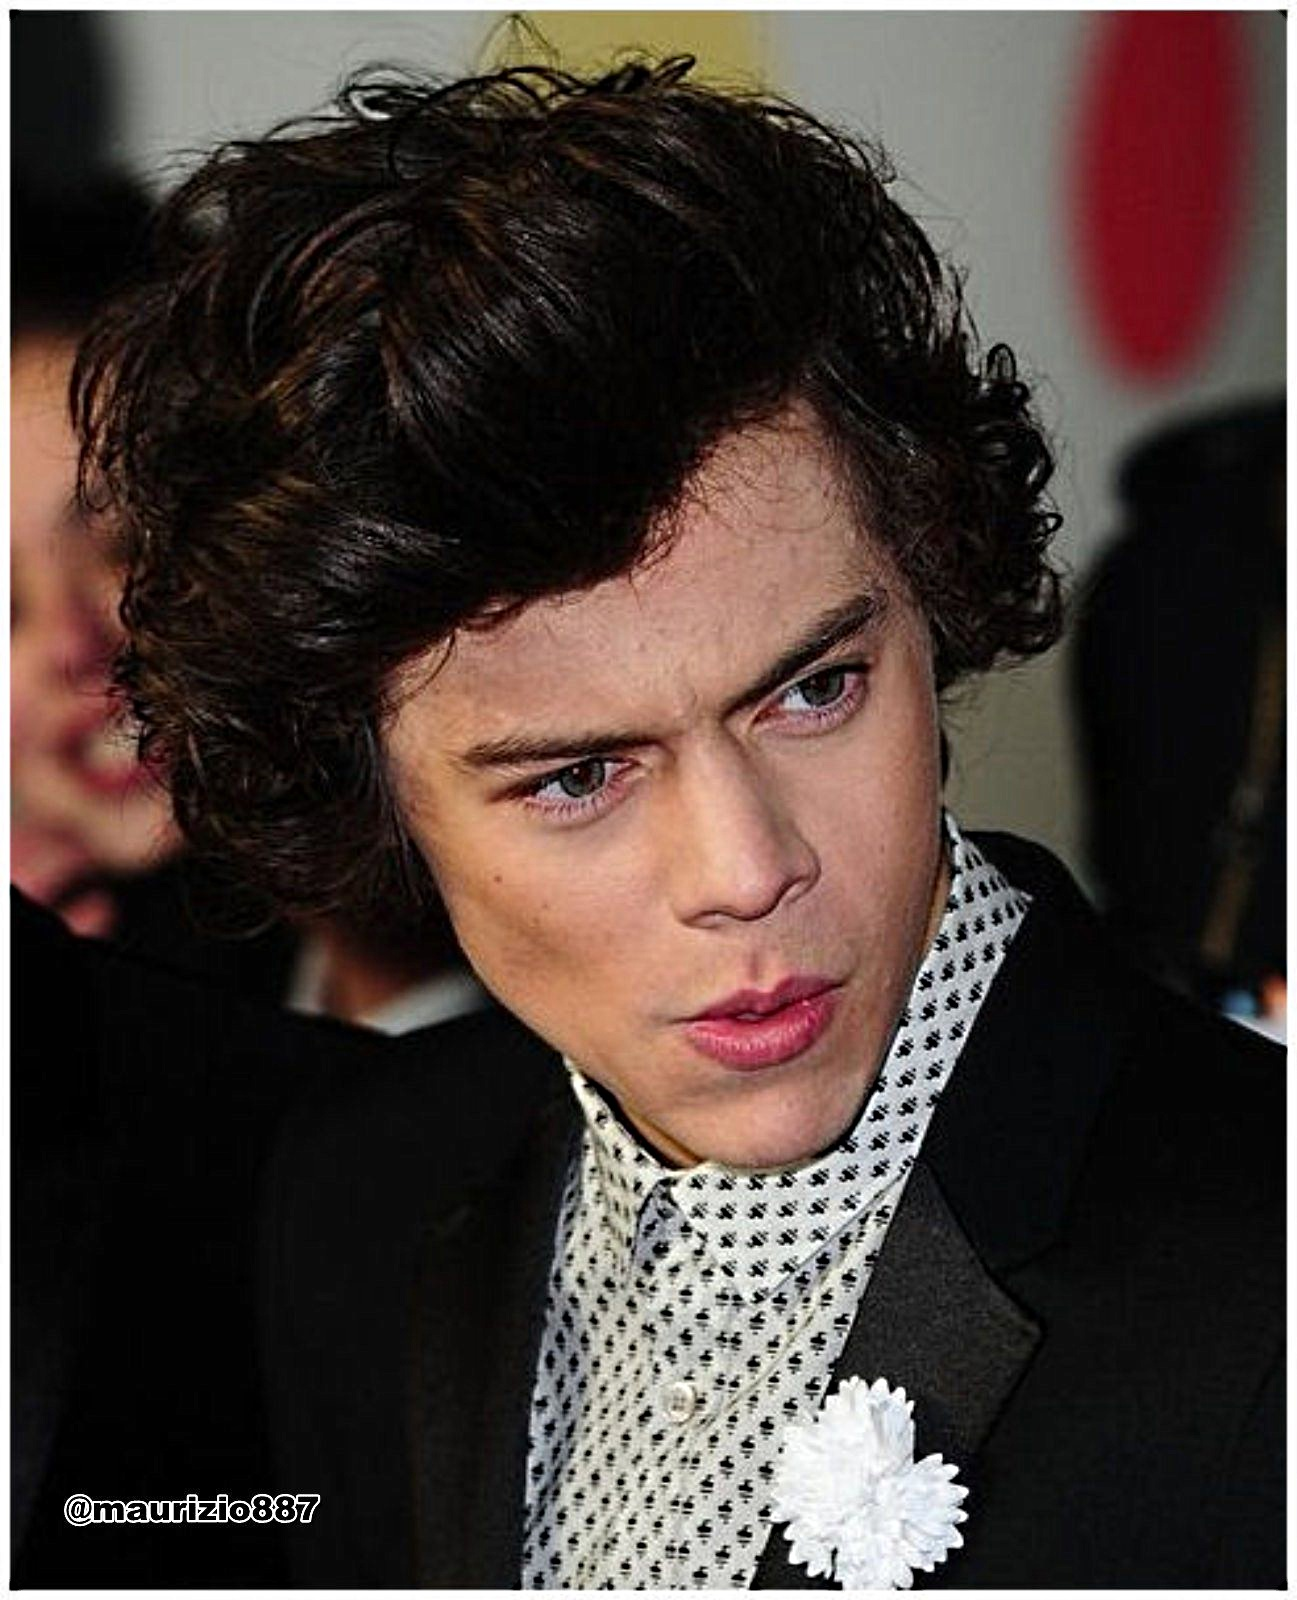 One direction harry 2013